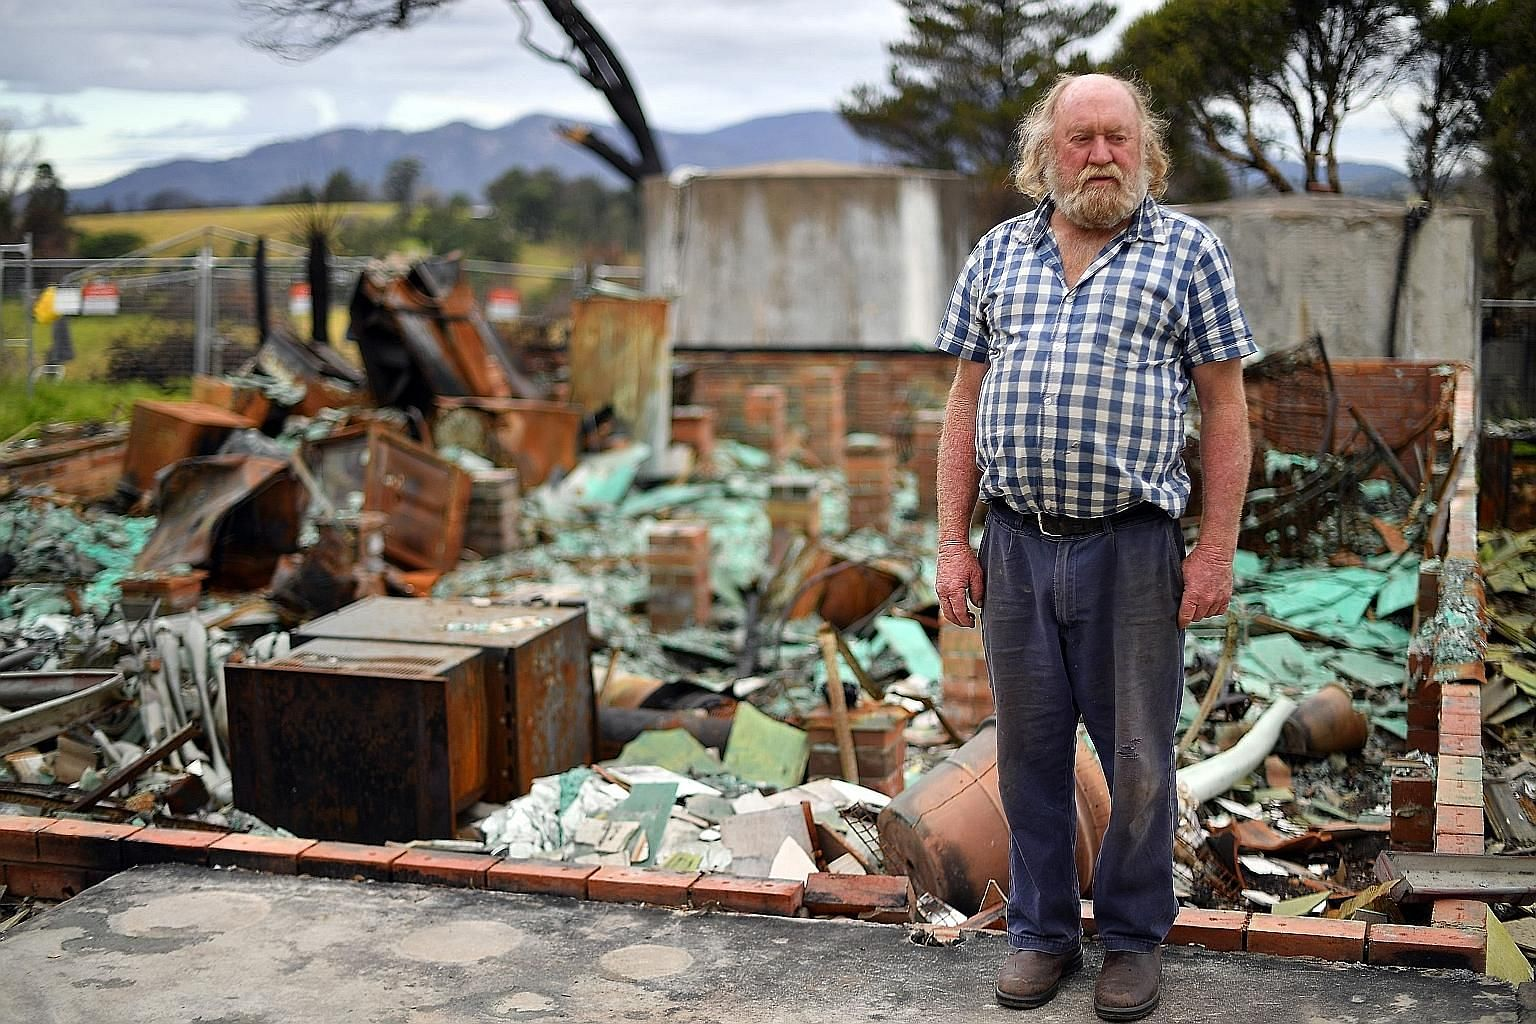 """Recovery has been """"slow and difficult"""" for many, says 66-year-old Wayne Keft, standing in front of the ruins of his house last Thursday. His home near Cobargo was destroyed when """"a fireball went through the front of the house"""". Ms Anita Lawrence, 51,"""